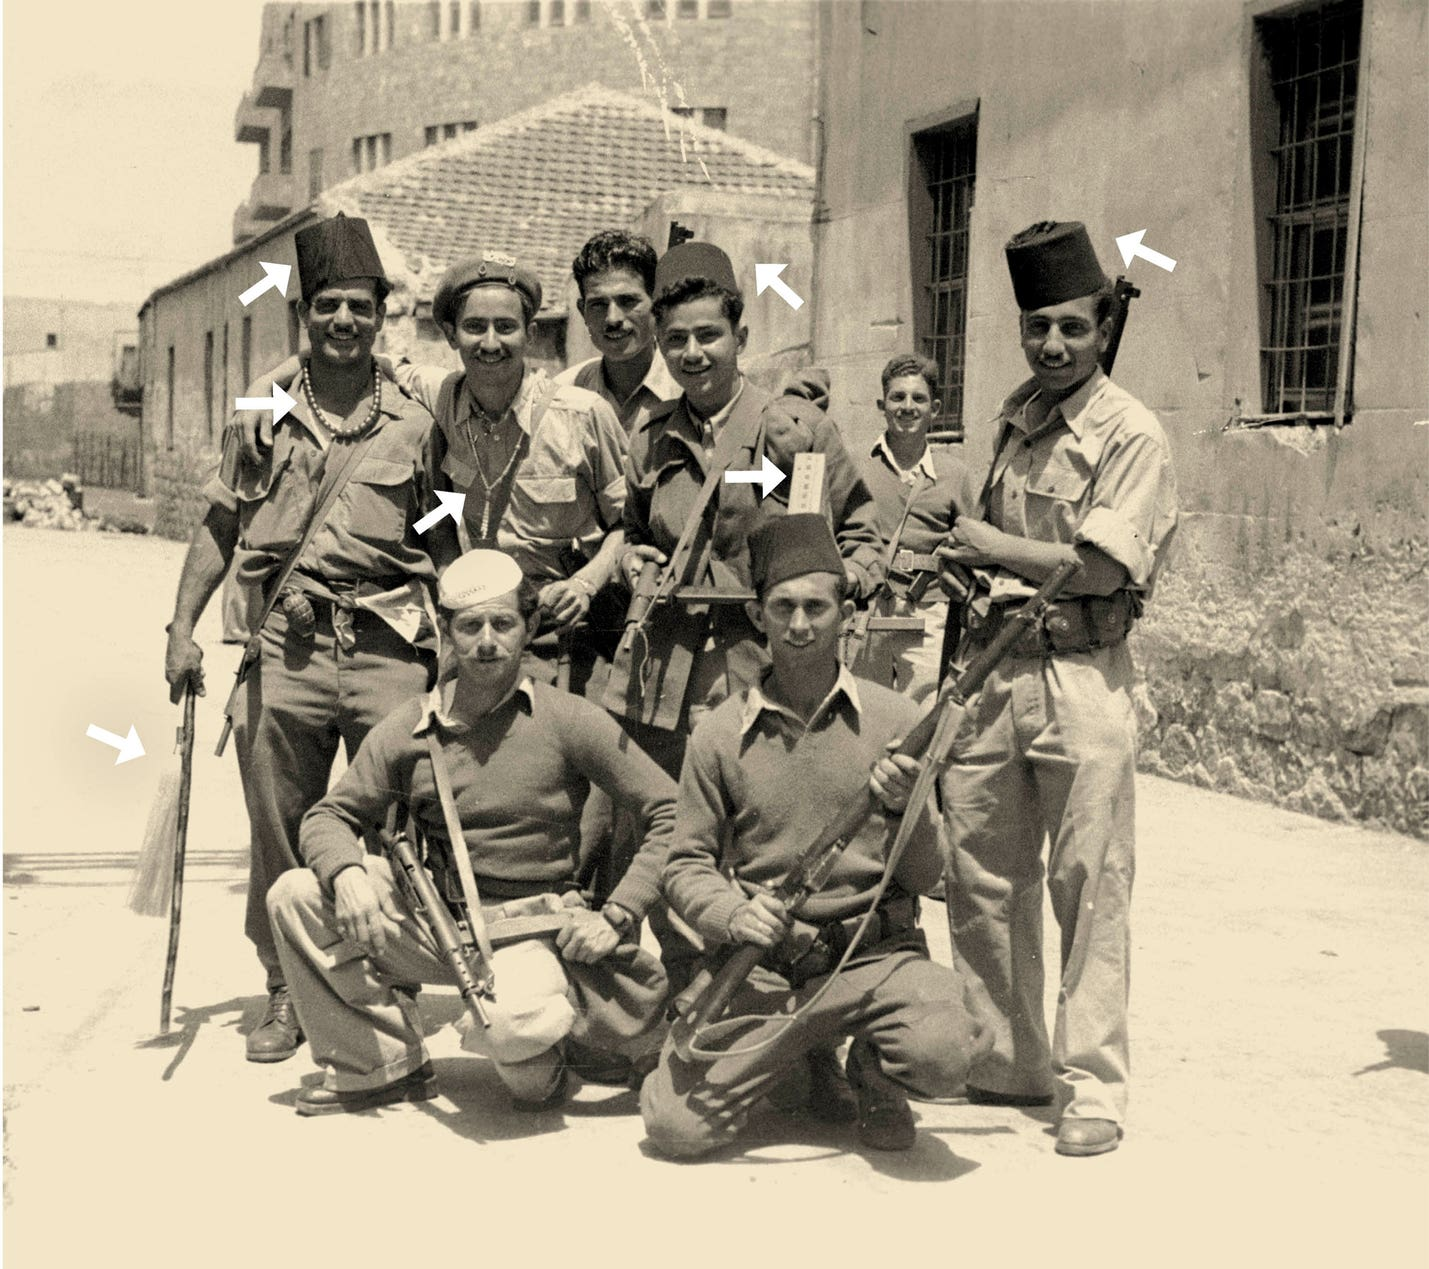 Jewish Soldiers and Civilians Looted Arab Neighbors' Property en Masse in '48. The Authorities Turned a Blind Eye